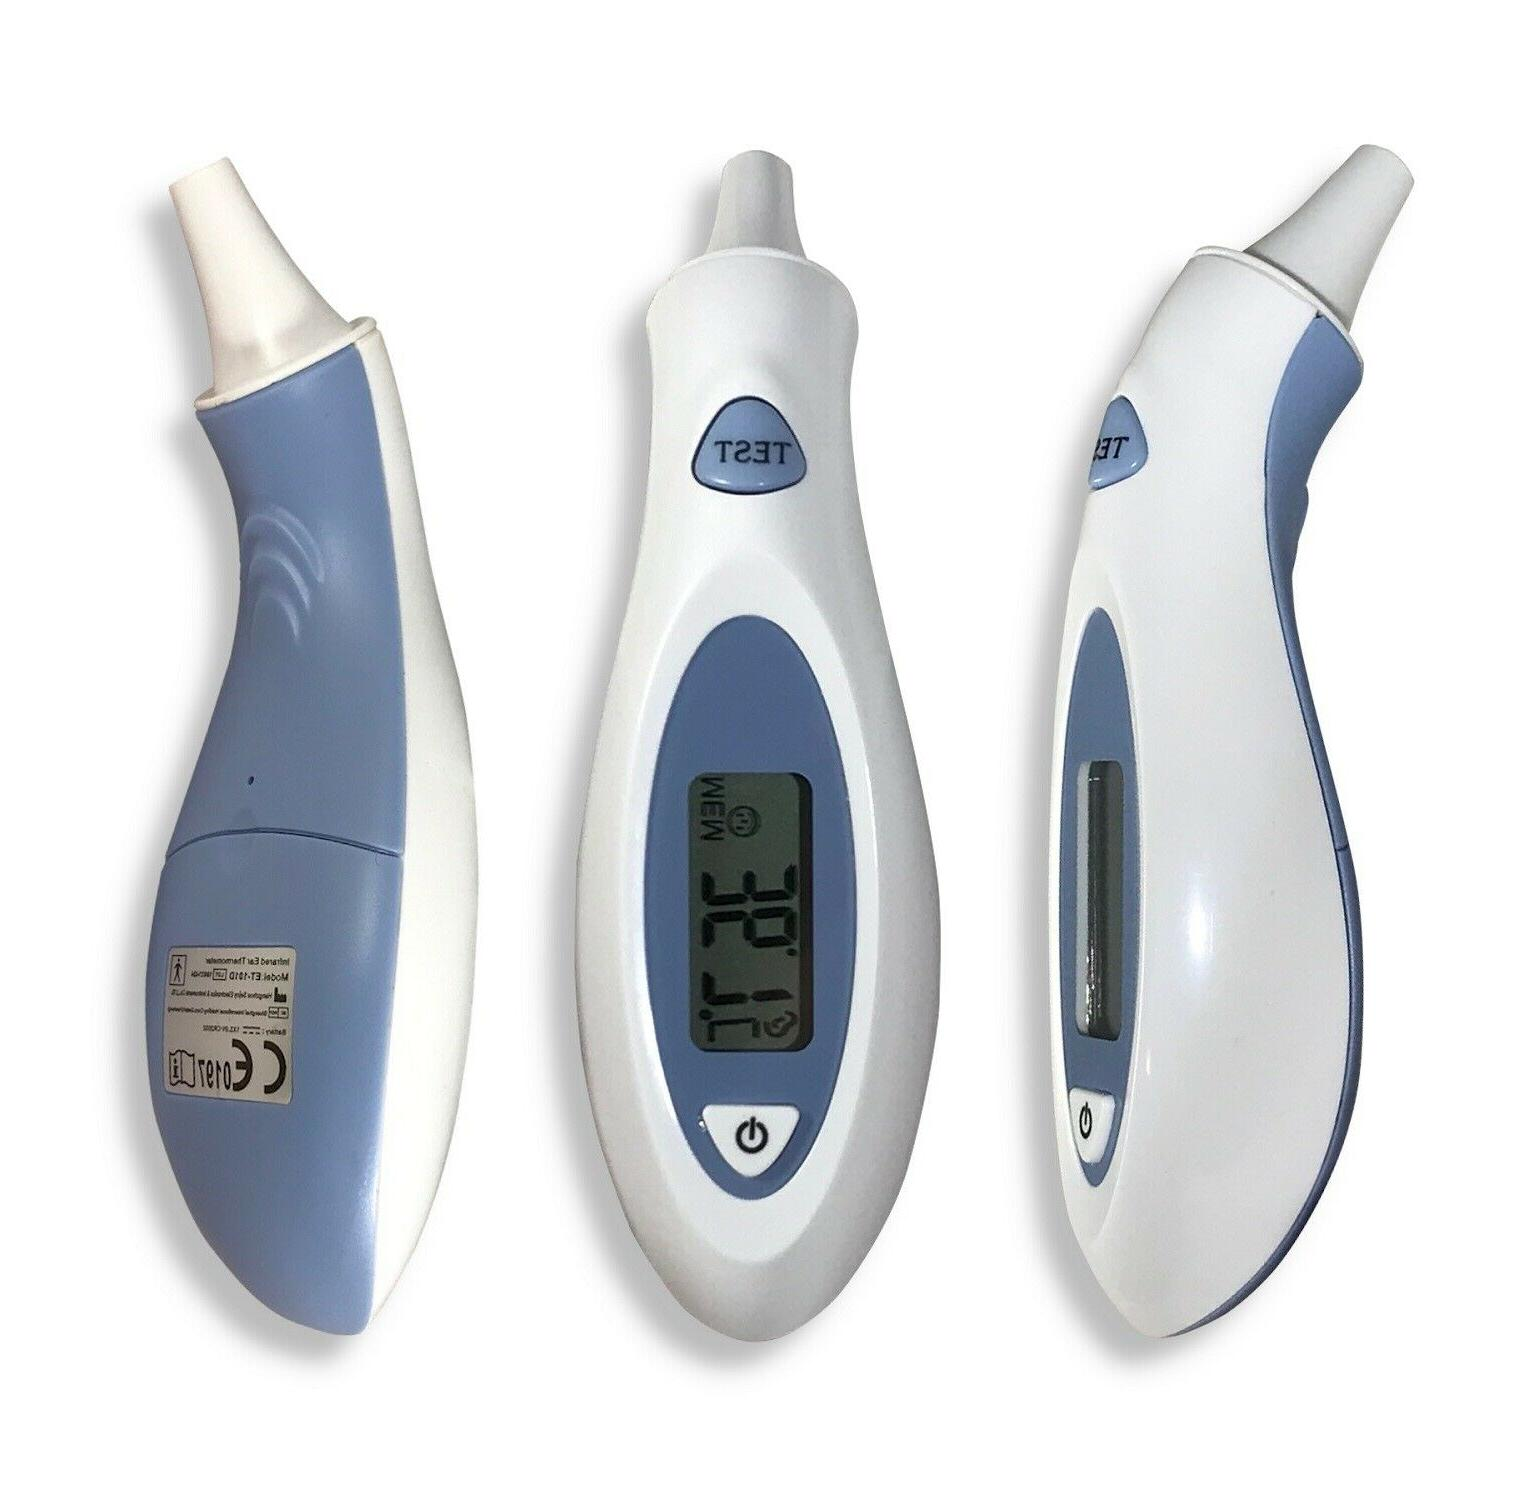 et 101d infrared in ear digital thermometer